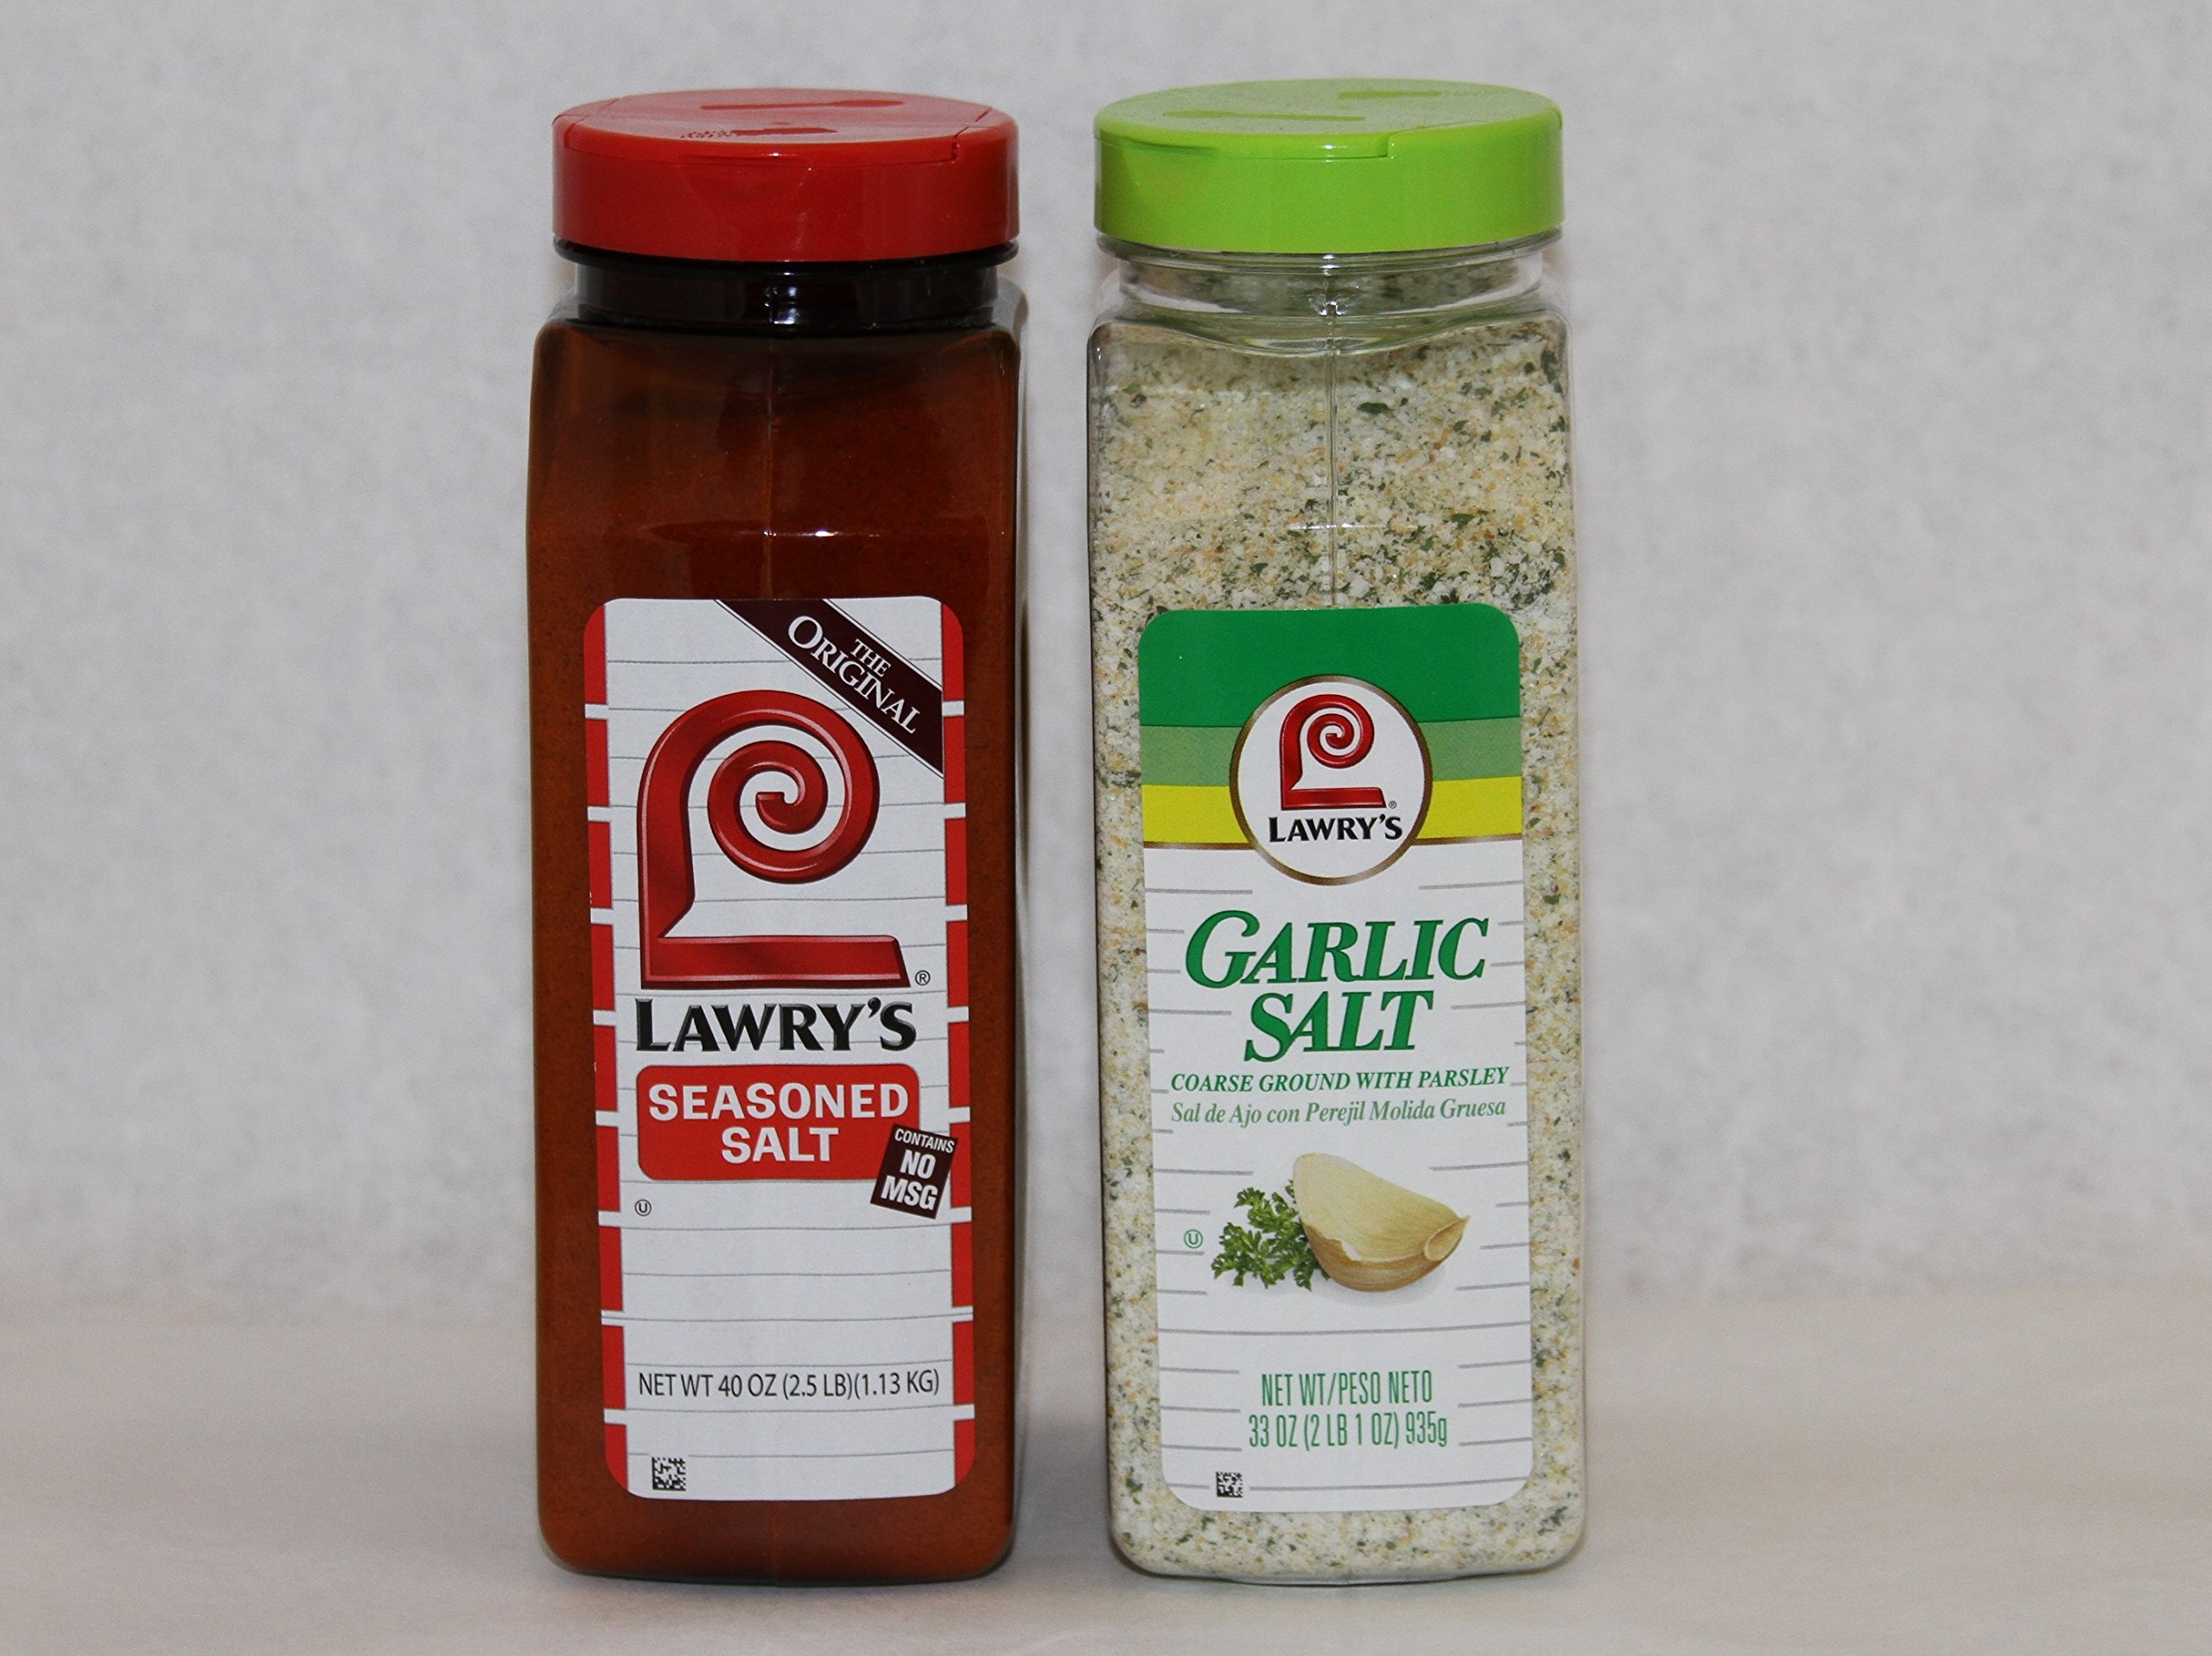 Lawry's Course Garlic Salt with Parsley & Season Salt Pack